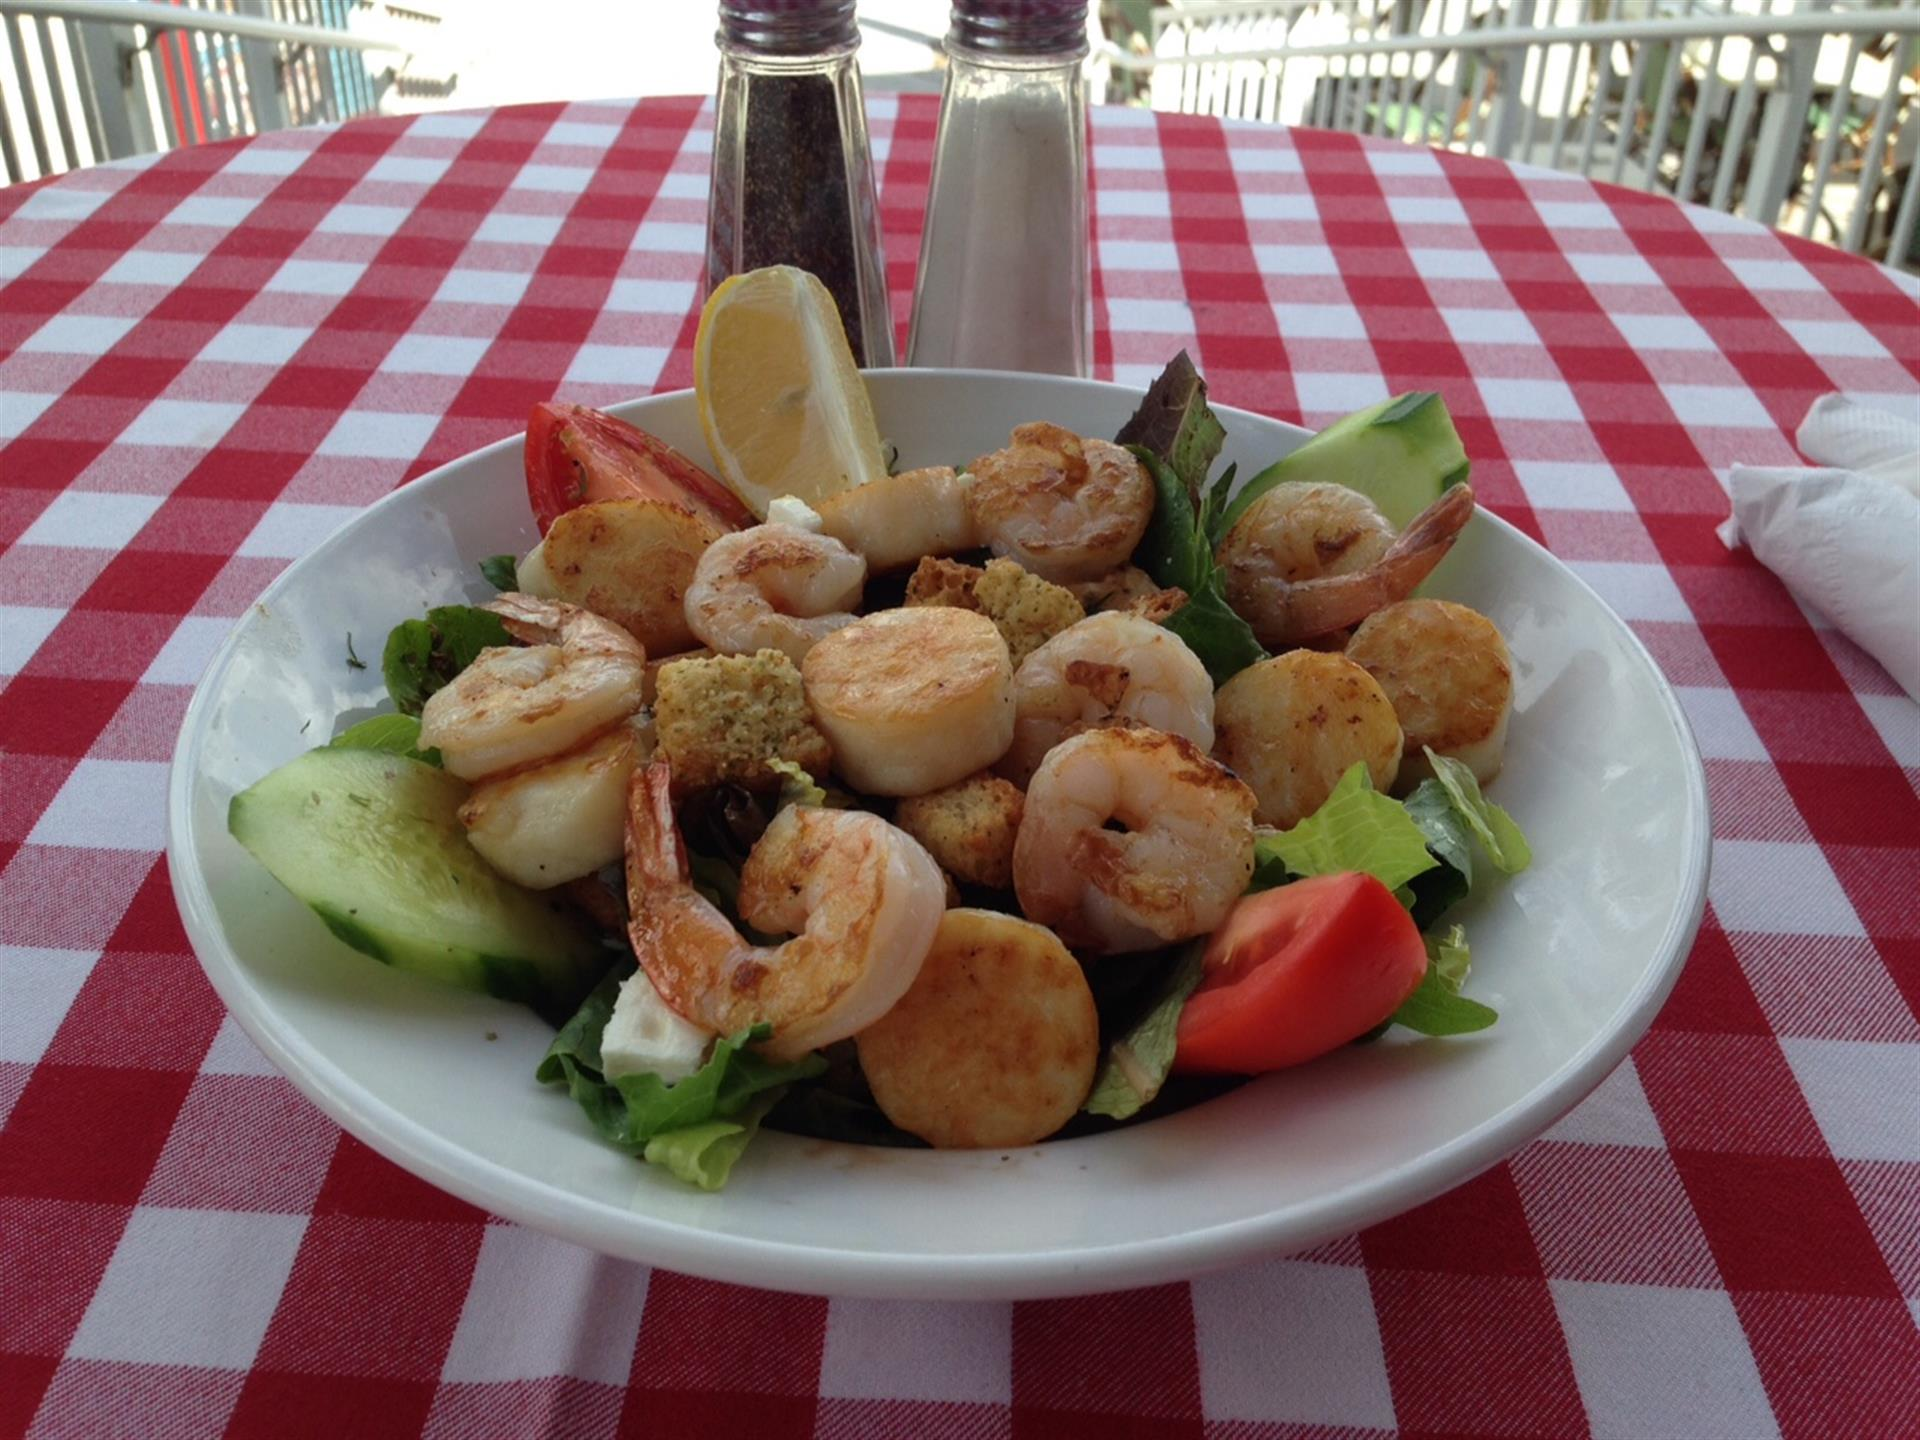 Salad with mixed greens, sliced tomato, cucumber, shrimps, scallops and lemon